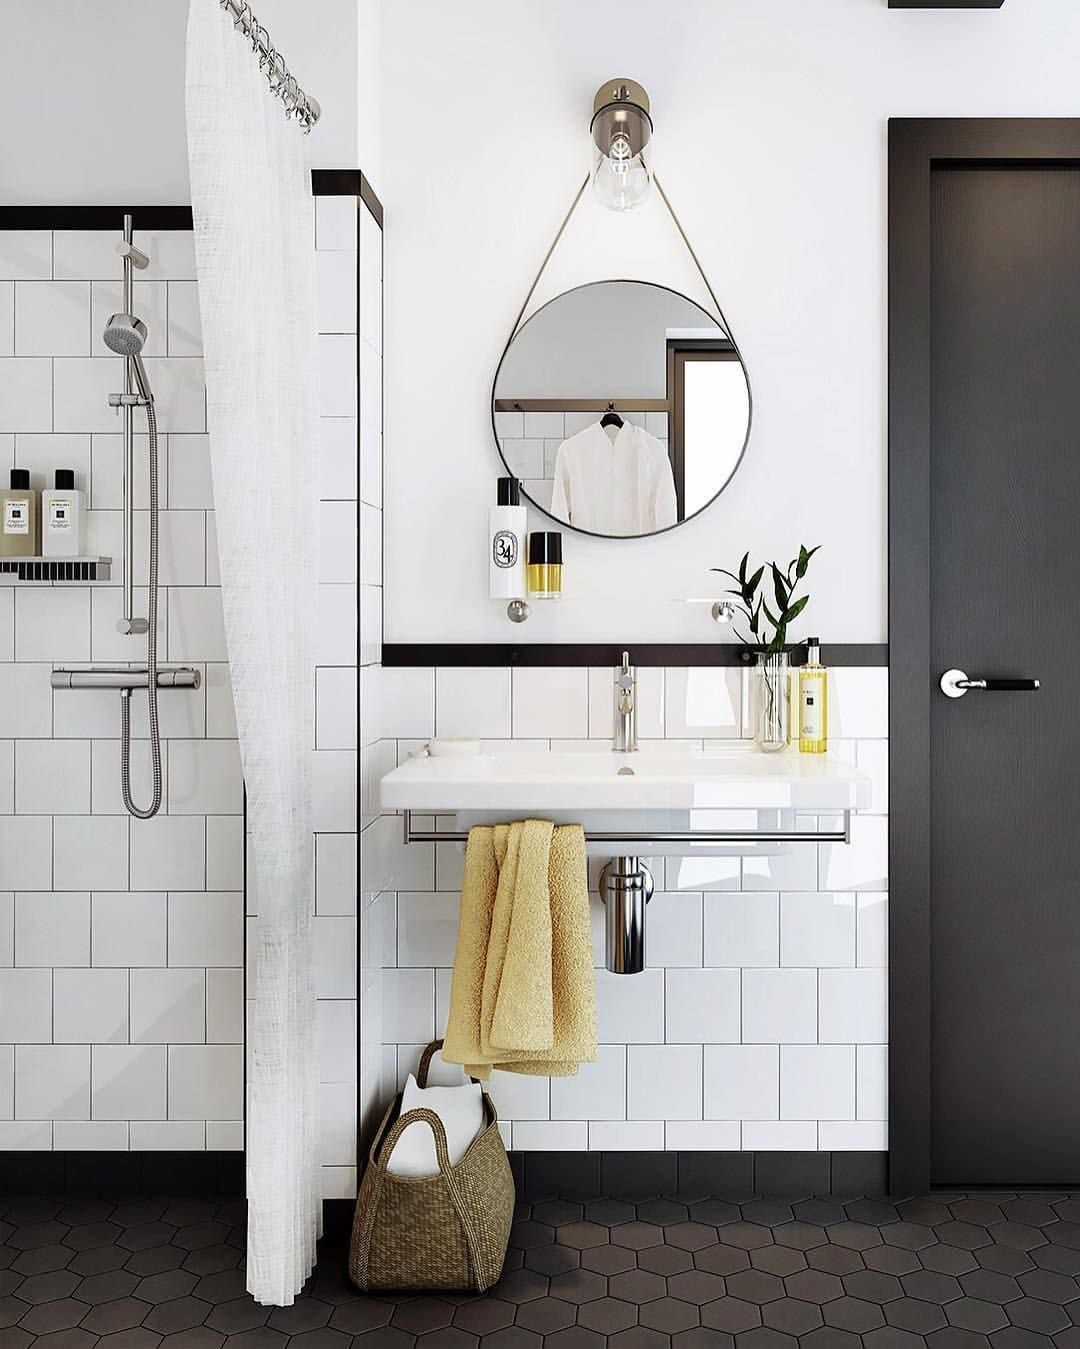 Color Trends What S New What S Next: What's The Next Big Tile Trend? Take A Wild Guess, And